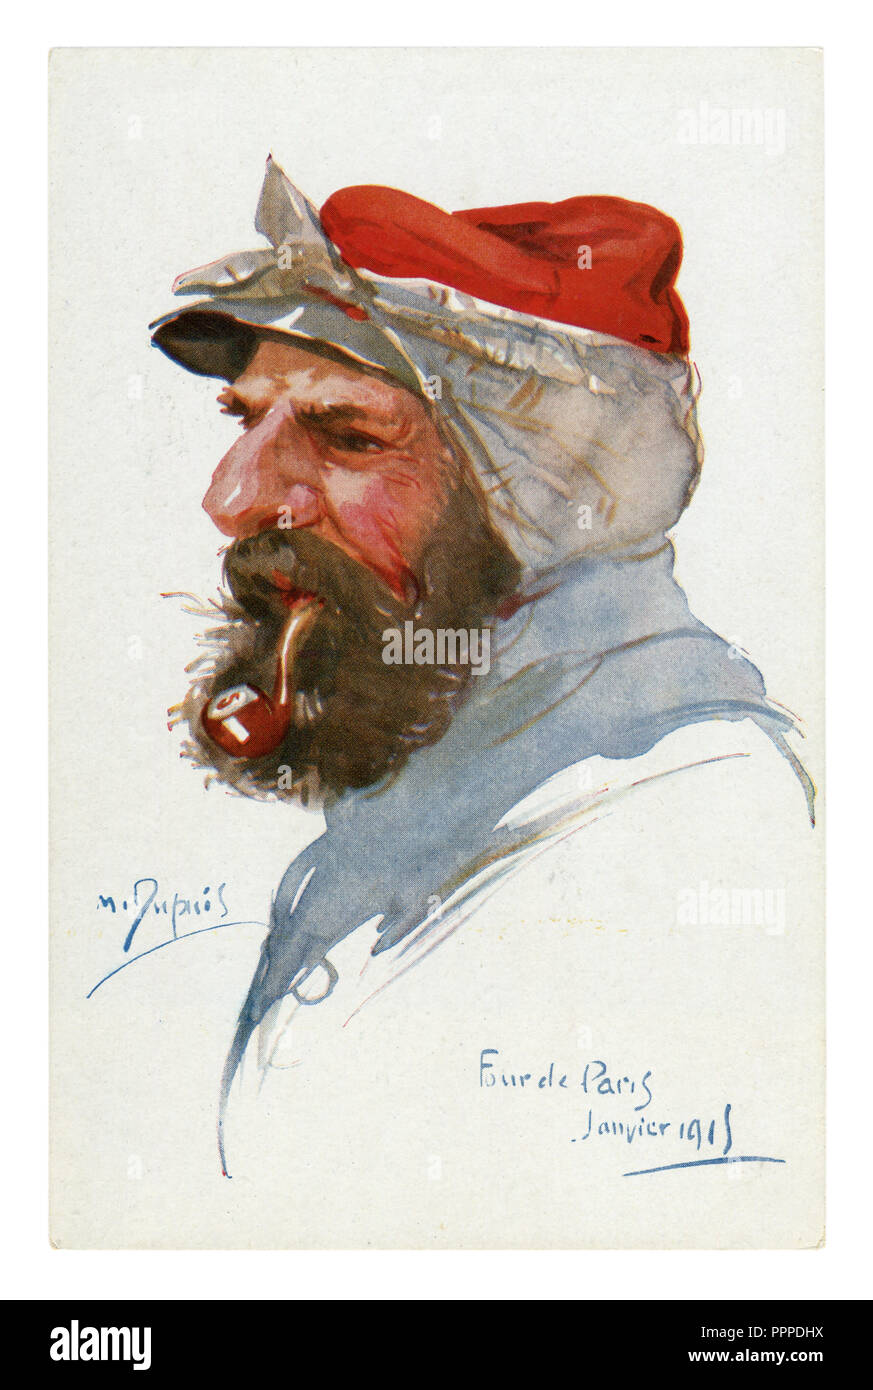 French historical postcard: portrait of an old experienced soldier in a red cap with a handkerchief who smokes a pipe. world war one 1914-1918. France - Stock Image